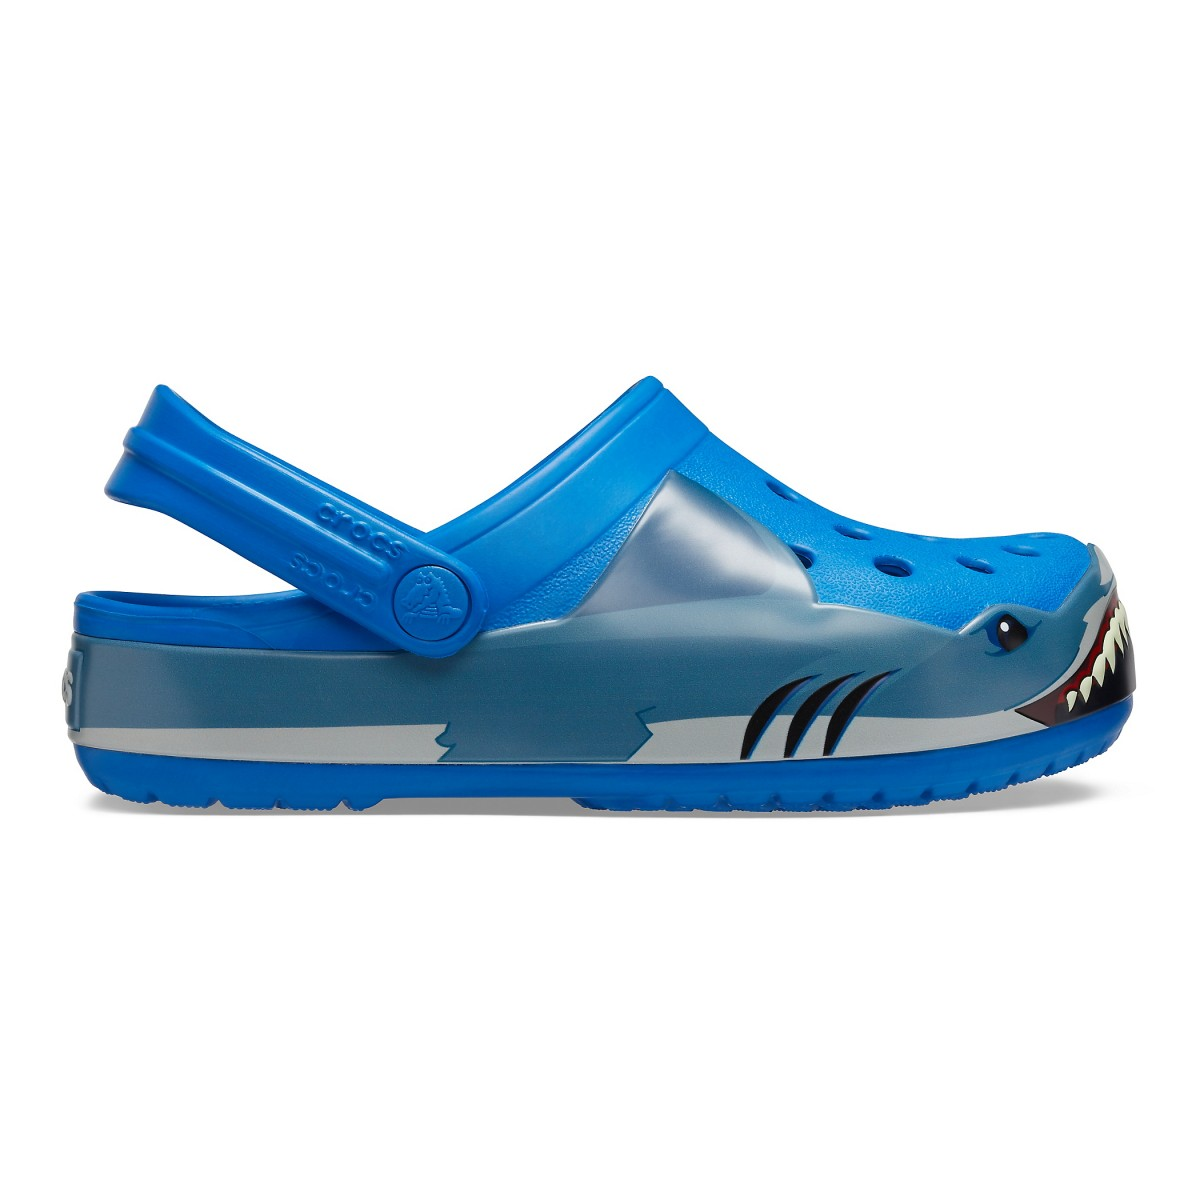 Saboți Băieți casual Crocs Crocs Fun Lab Shark Band Clog Albastri -1